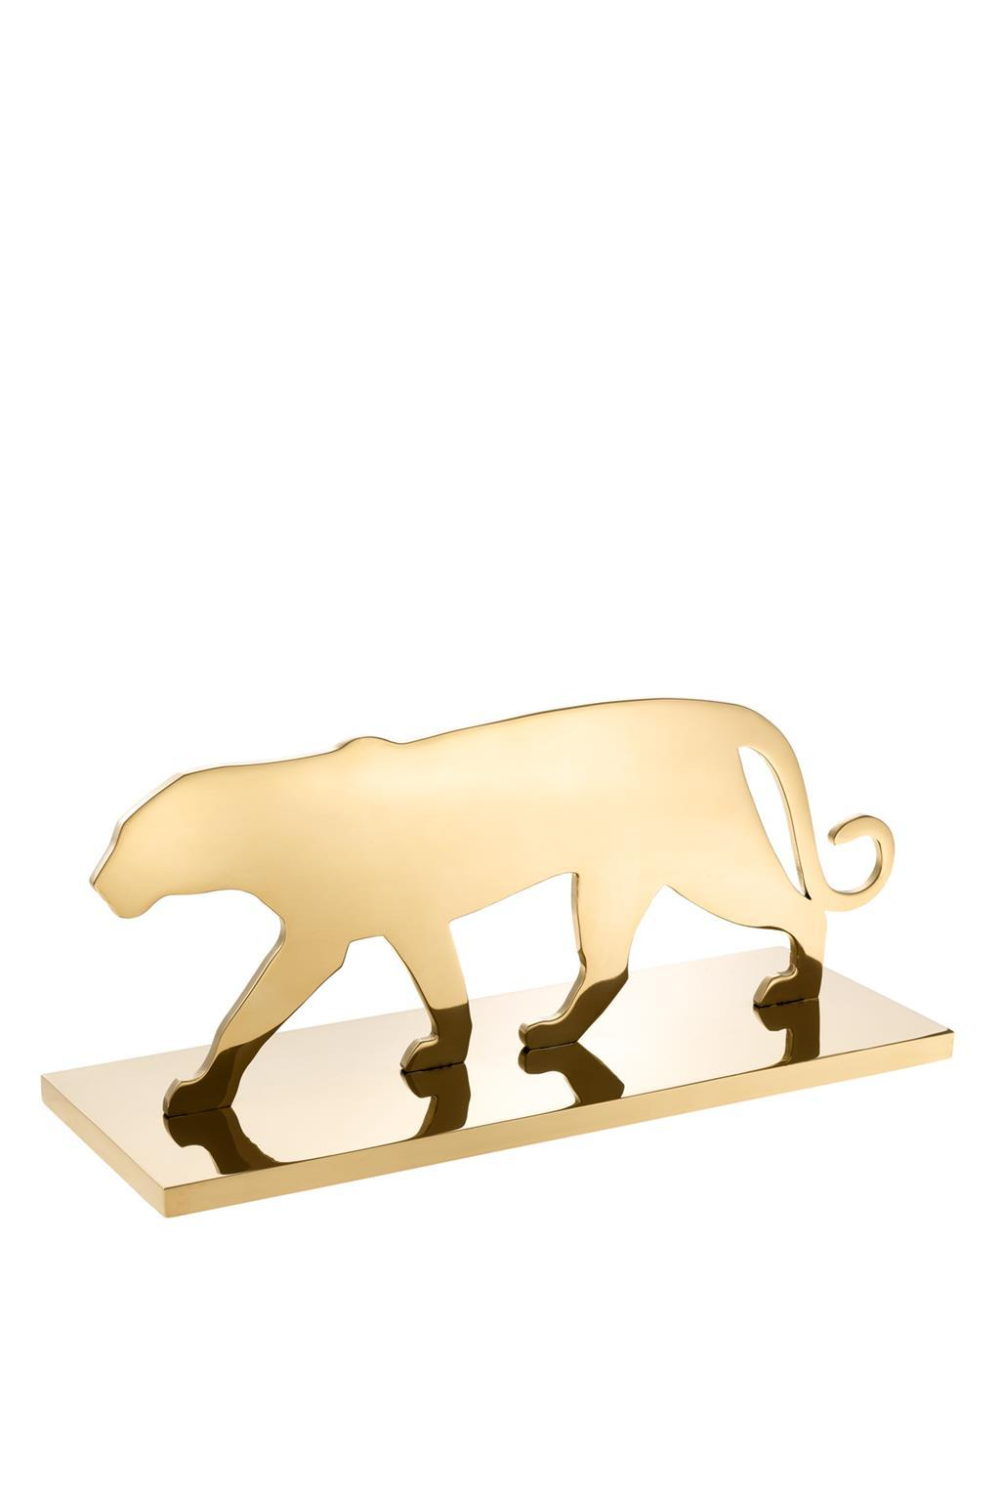 Gold Decorative Object | Eichholtz Panther Silhouette | OROA